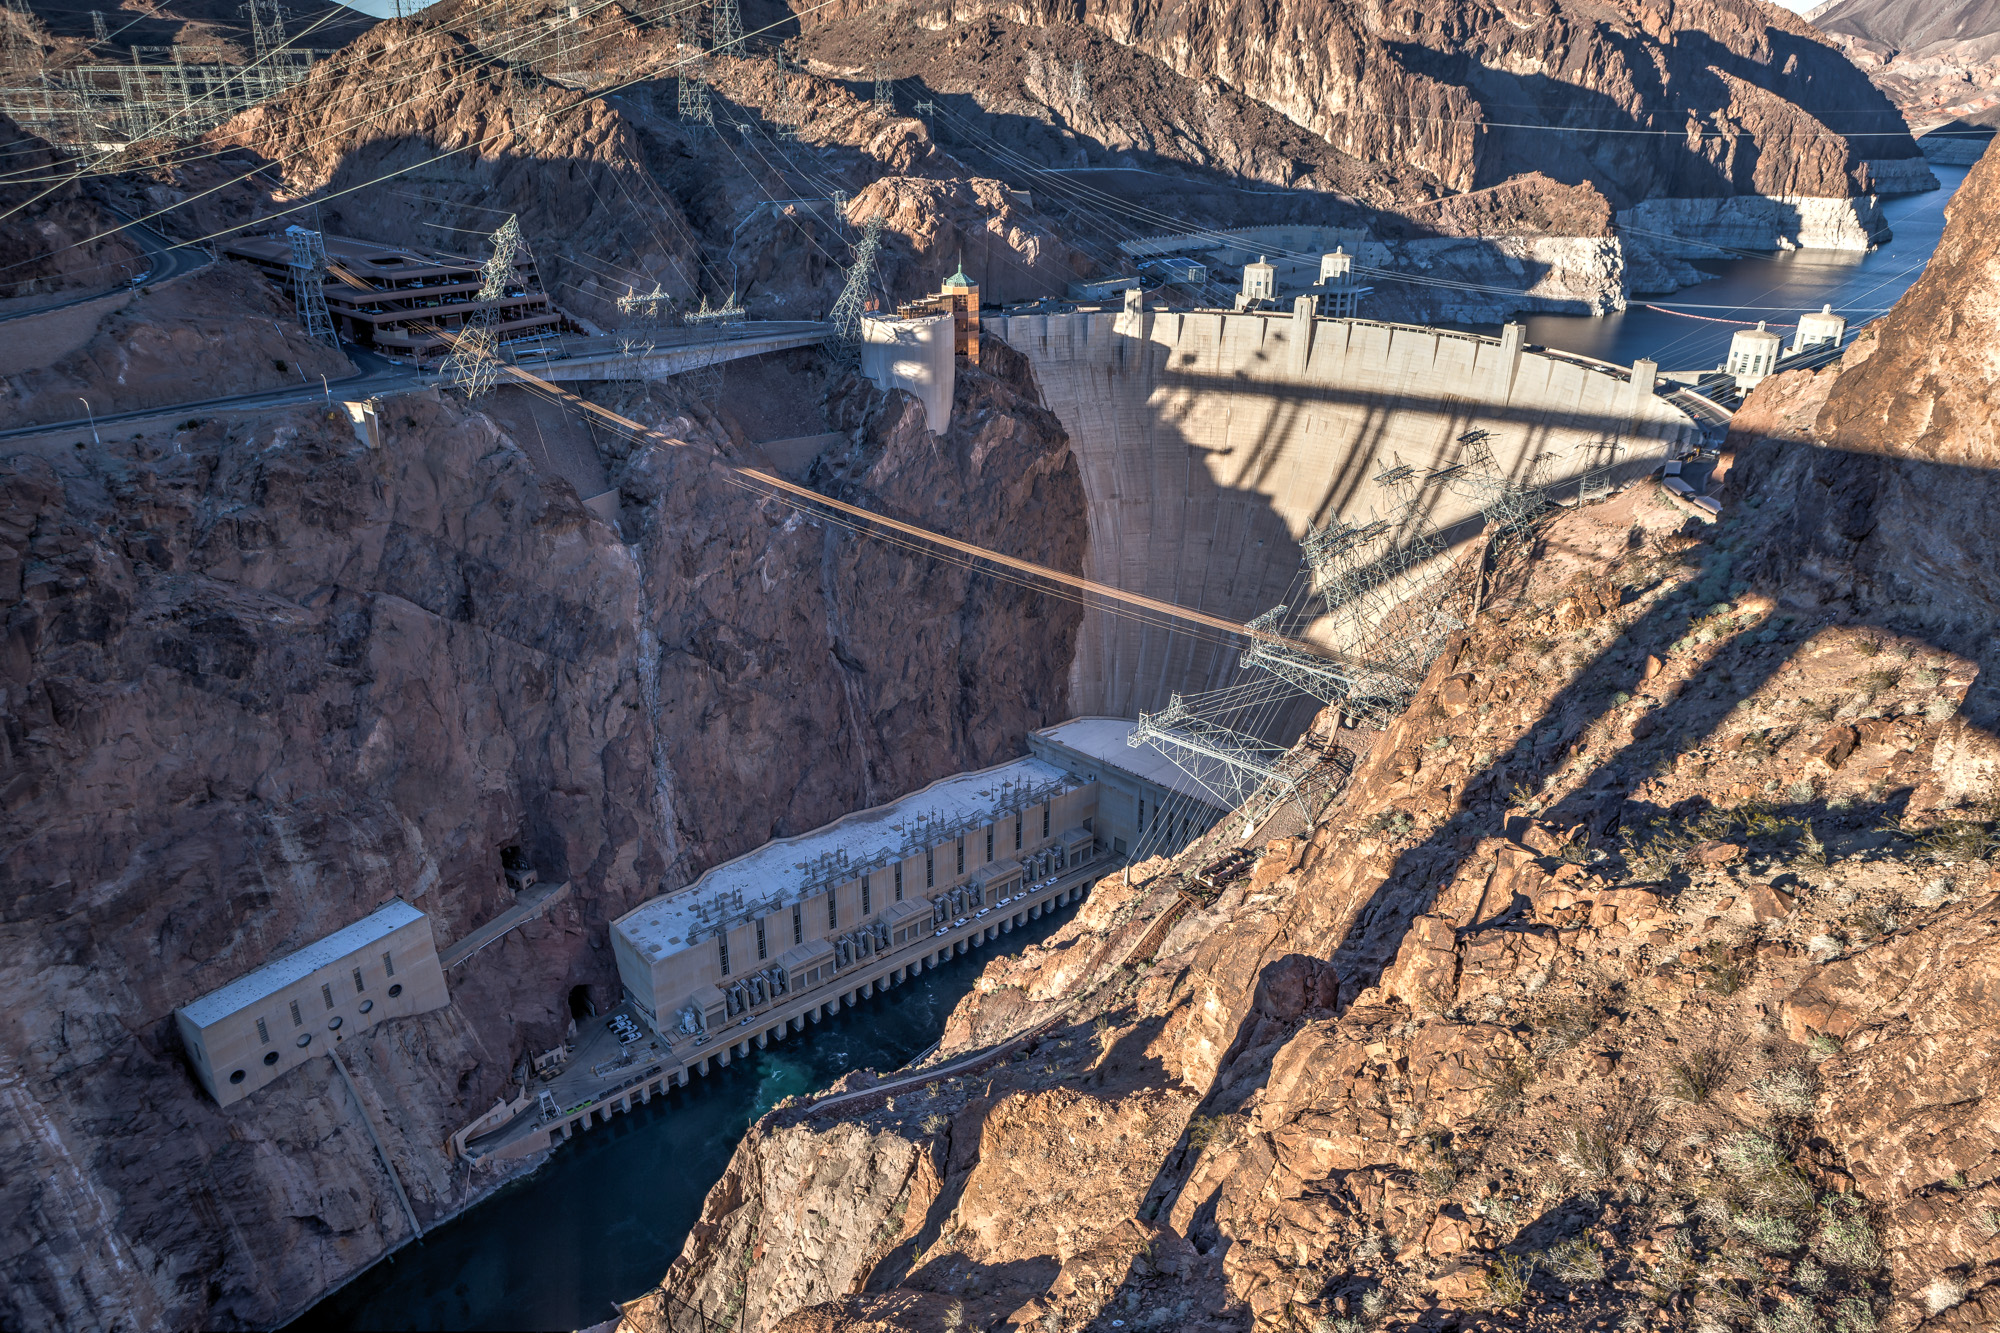 Challenge accepted: Hoover Dam Mini GeoTrail